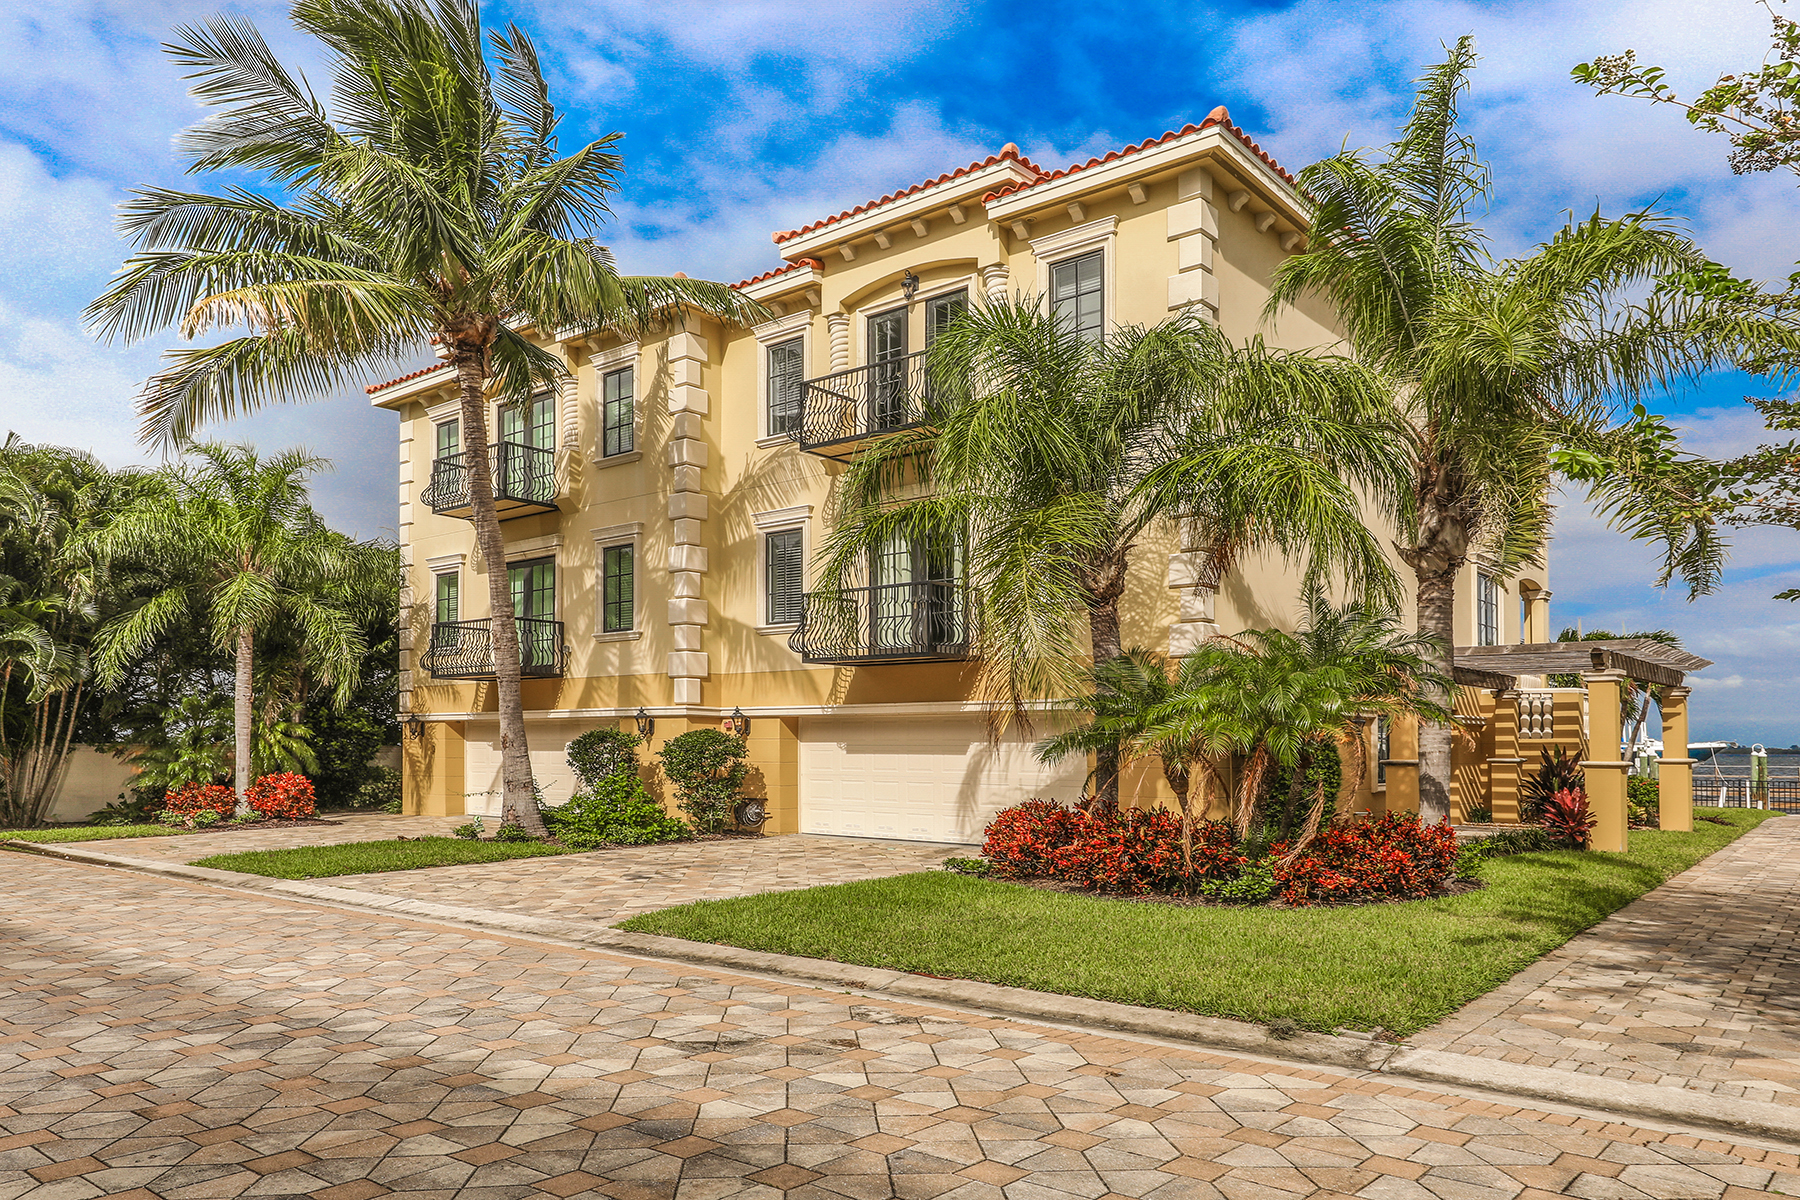 townhouses for Sale at VILLAS OF HOLMES BEACH 214 52nd St Holmes Beach, Florida 34217 United States